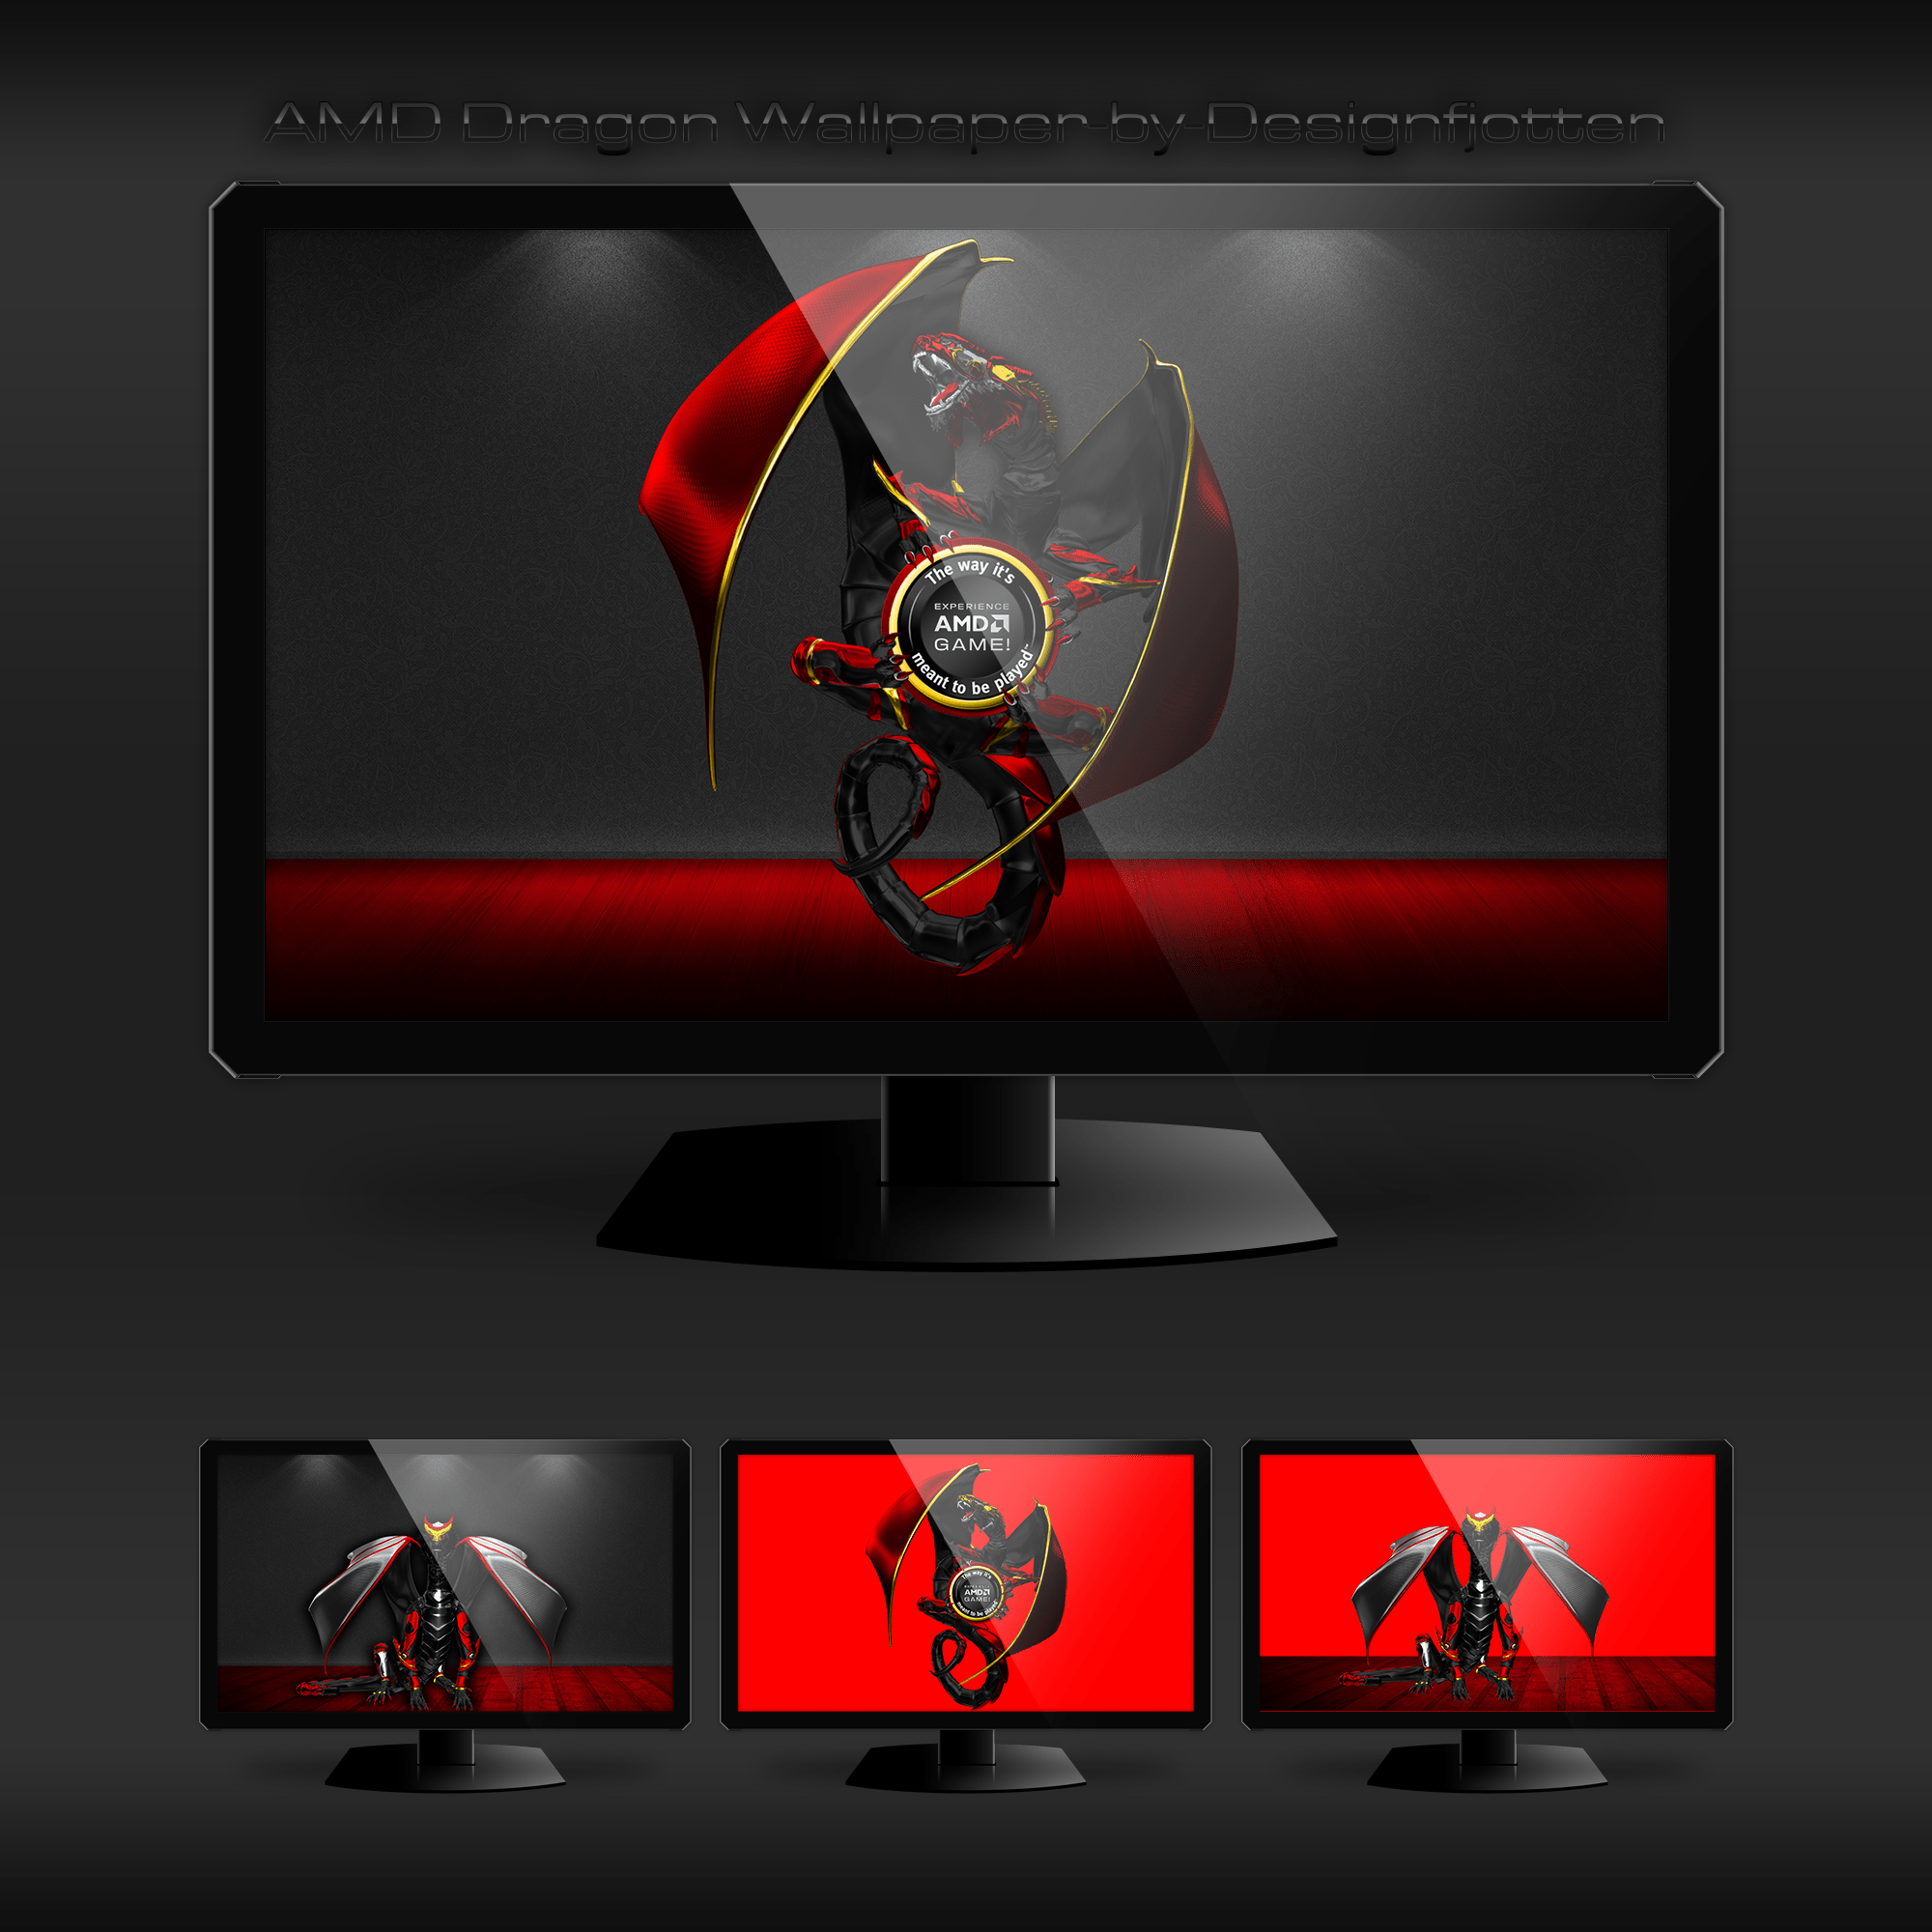 Msi Wallpaper Full Hd Amd Dragon Wallpaper By Designfjotten By Designfjotten On